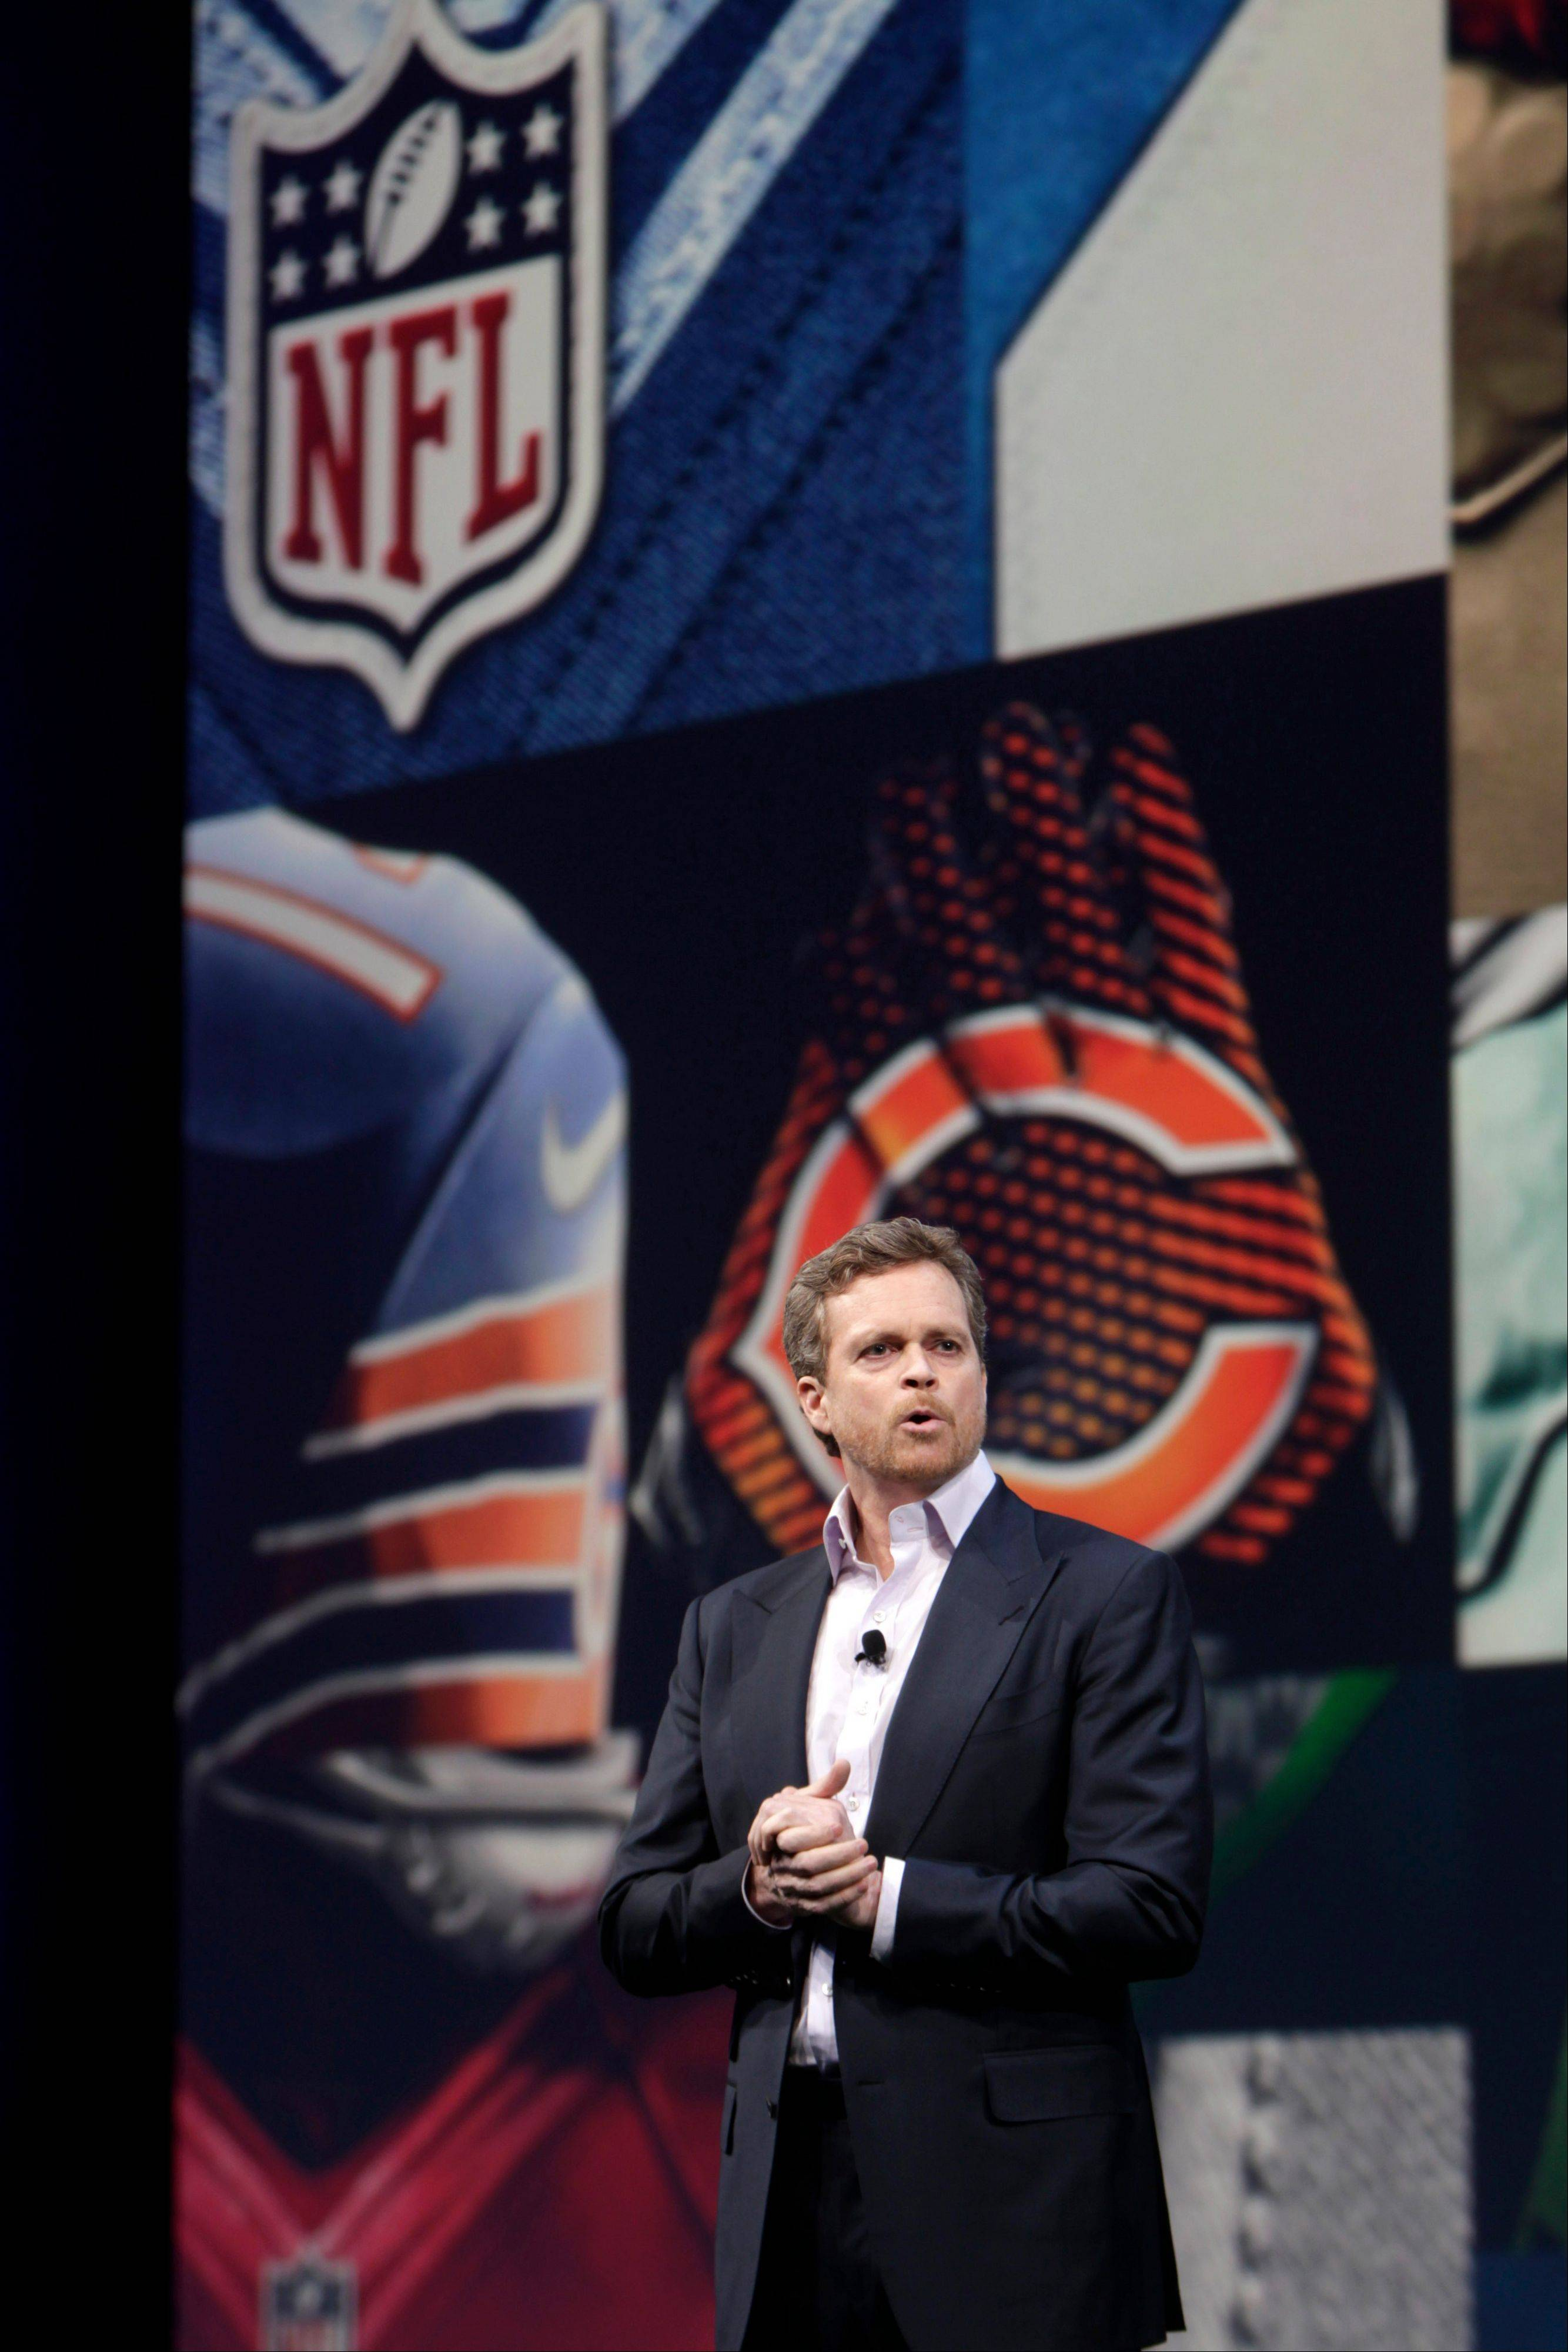 Nike CEO Mark Parker talks to guests during a presentation in New York, Tuesday, April 3, 2012. The NFL and Nike showed off the new look in grand style with a gridiron-styled fashion show at a Brooklyn film studio.